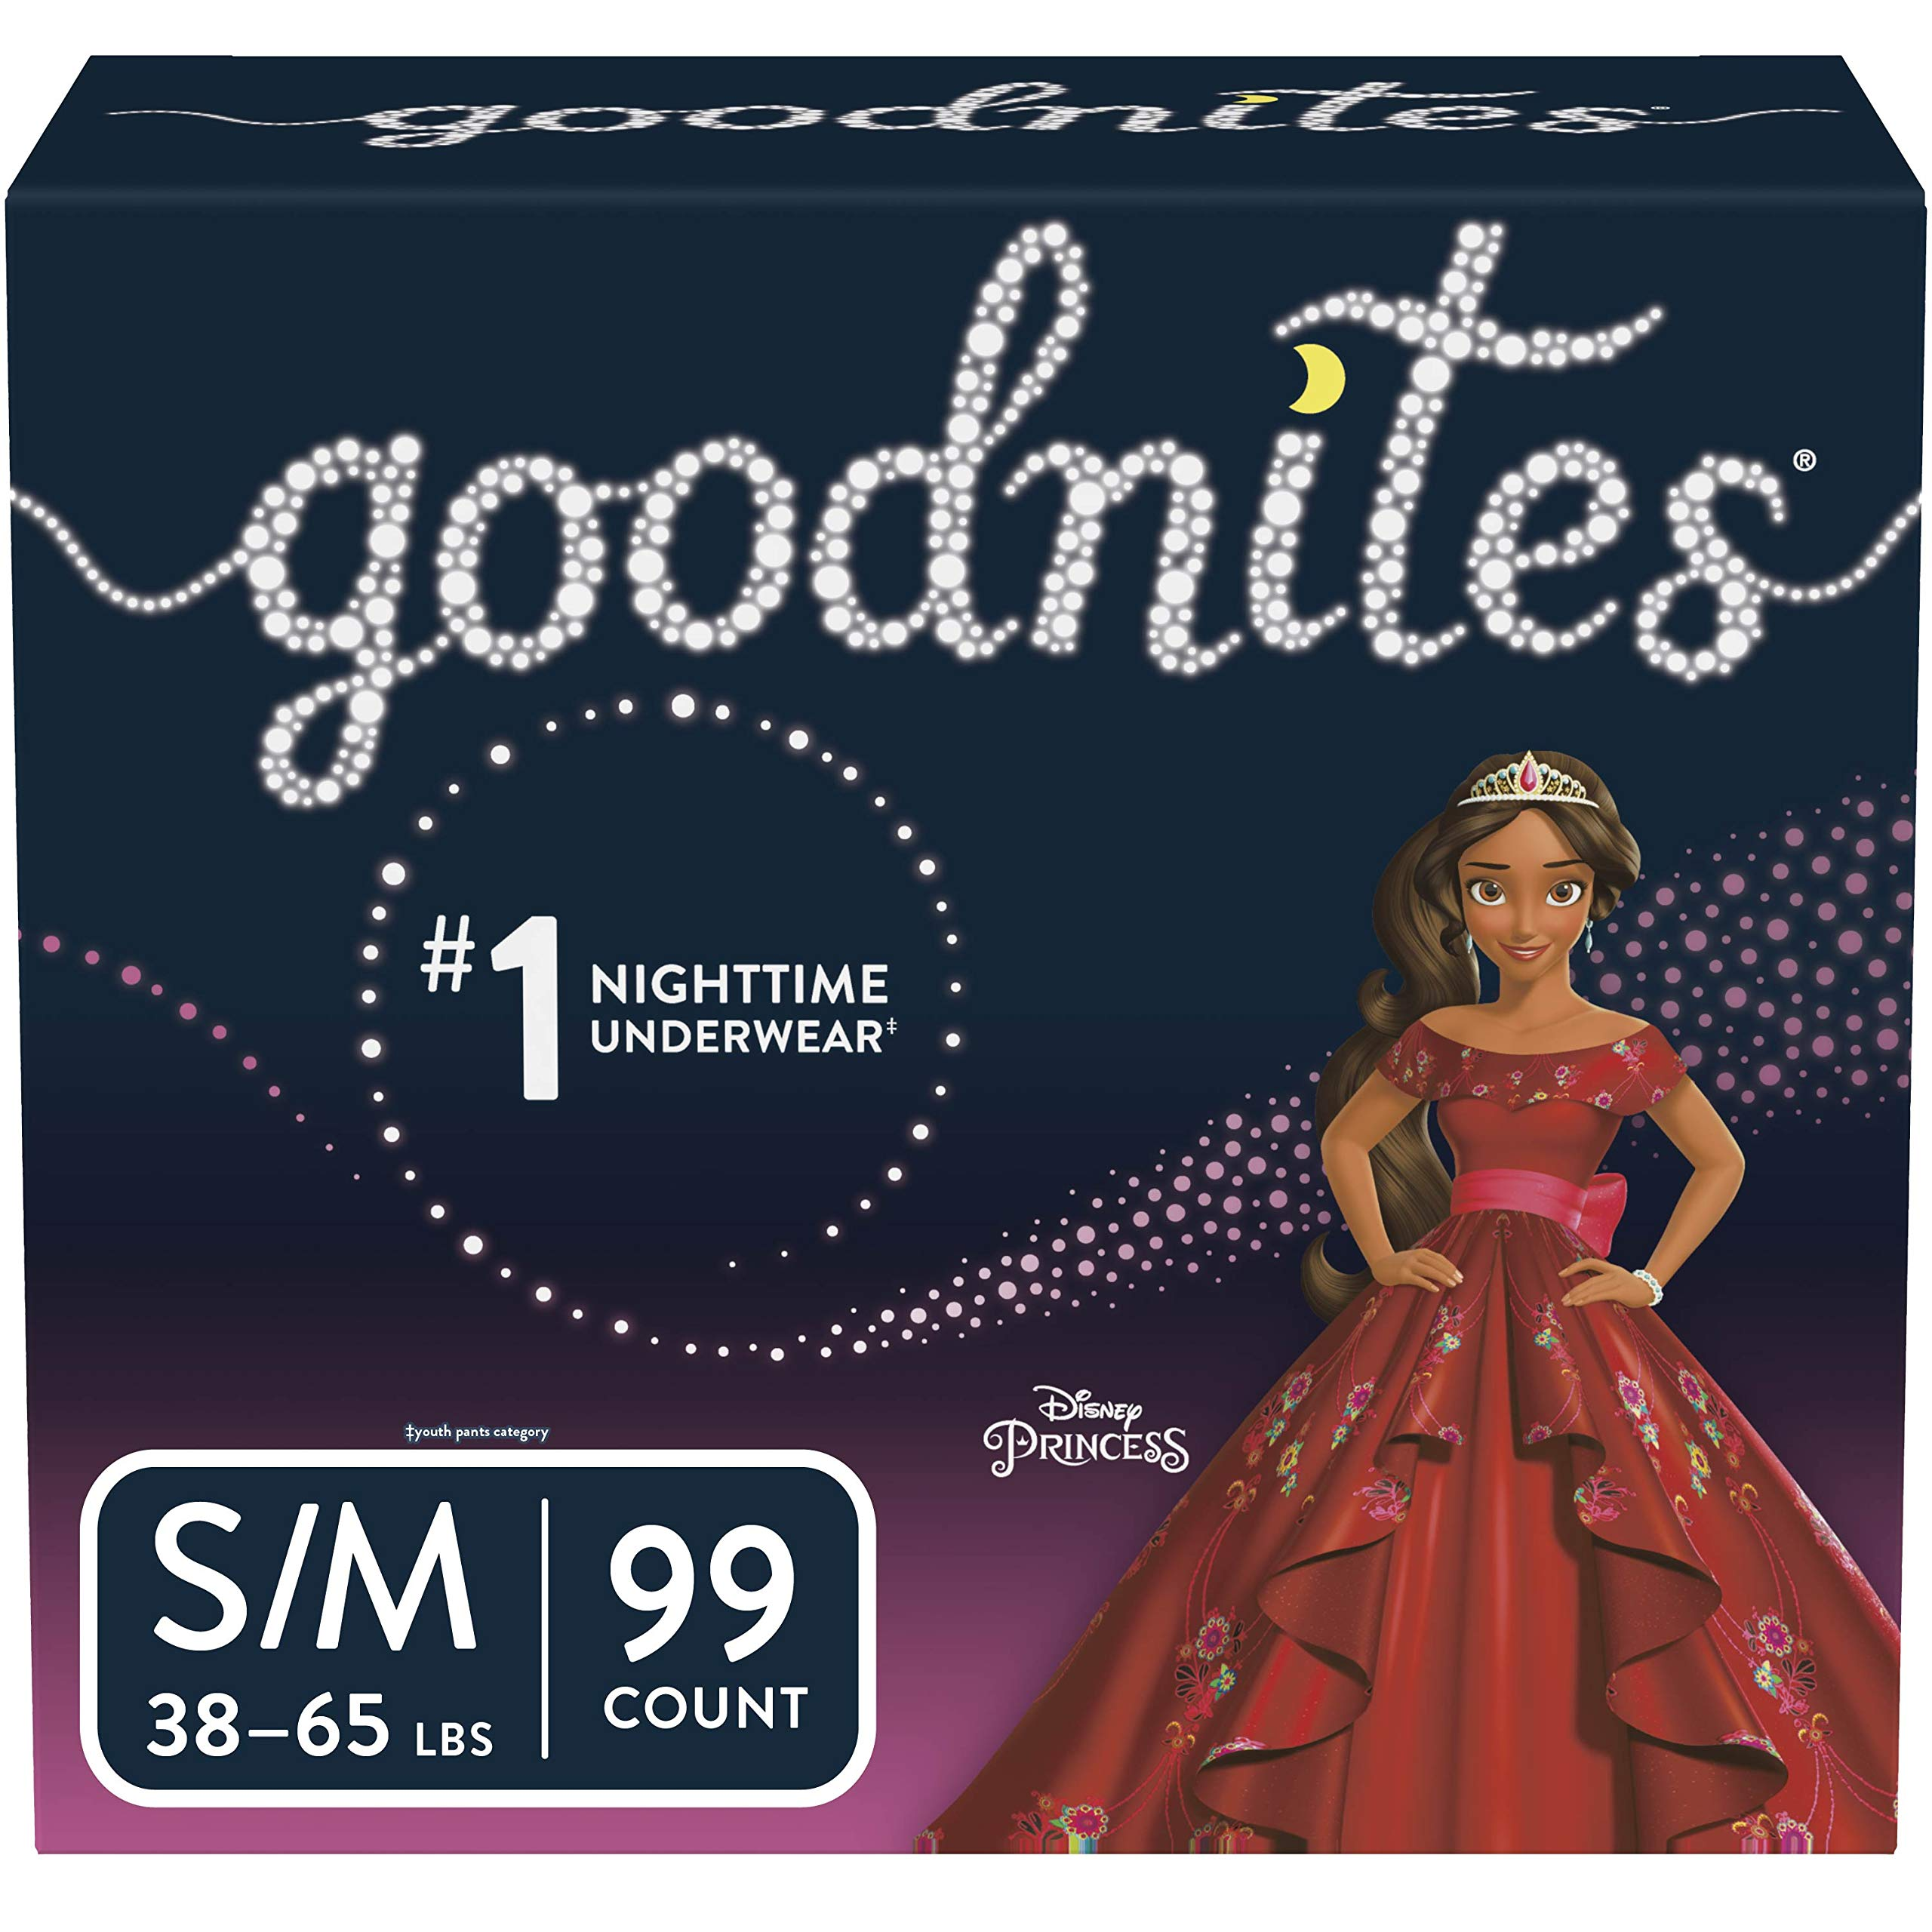 Goodnites Bedwetting Underwear for Girls, S/M (38-65 lb.), 99 Ct, Stock Up Pack (Packaging May Vary) by GoodNites